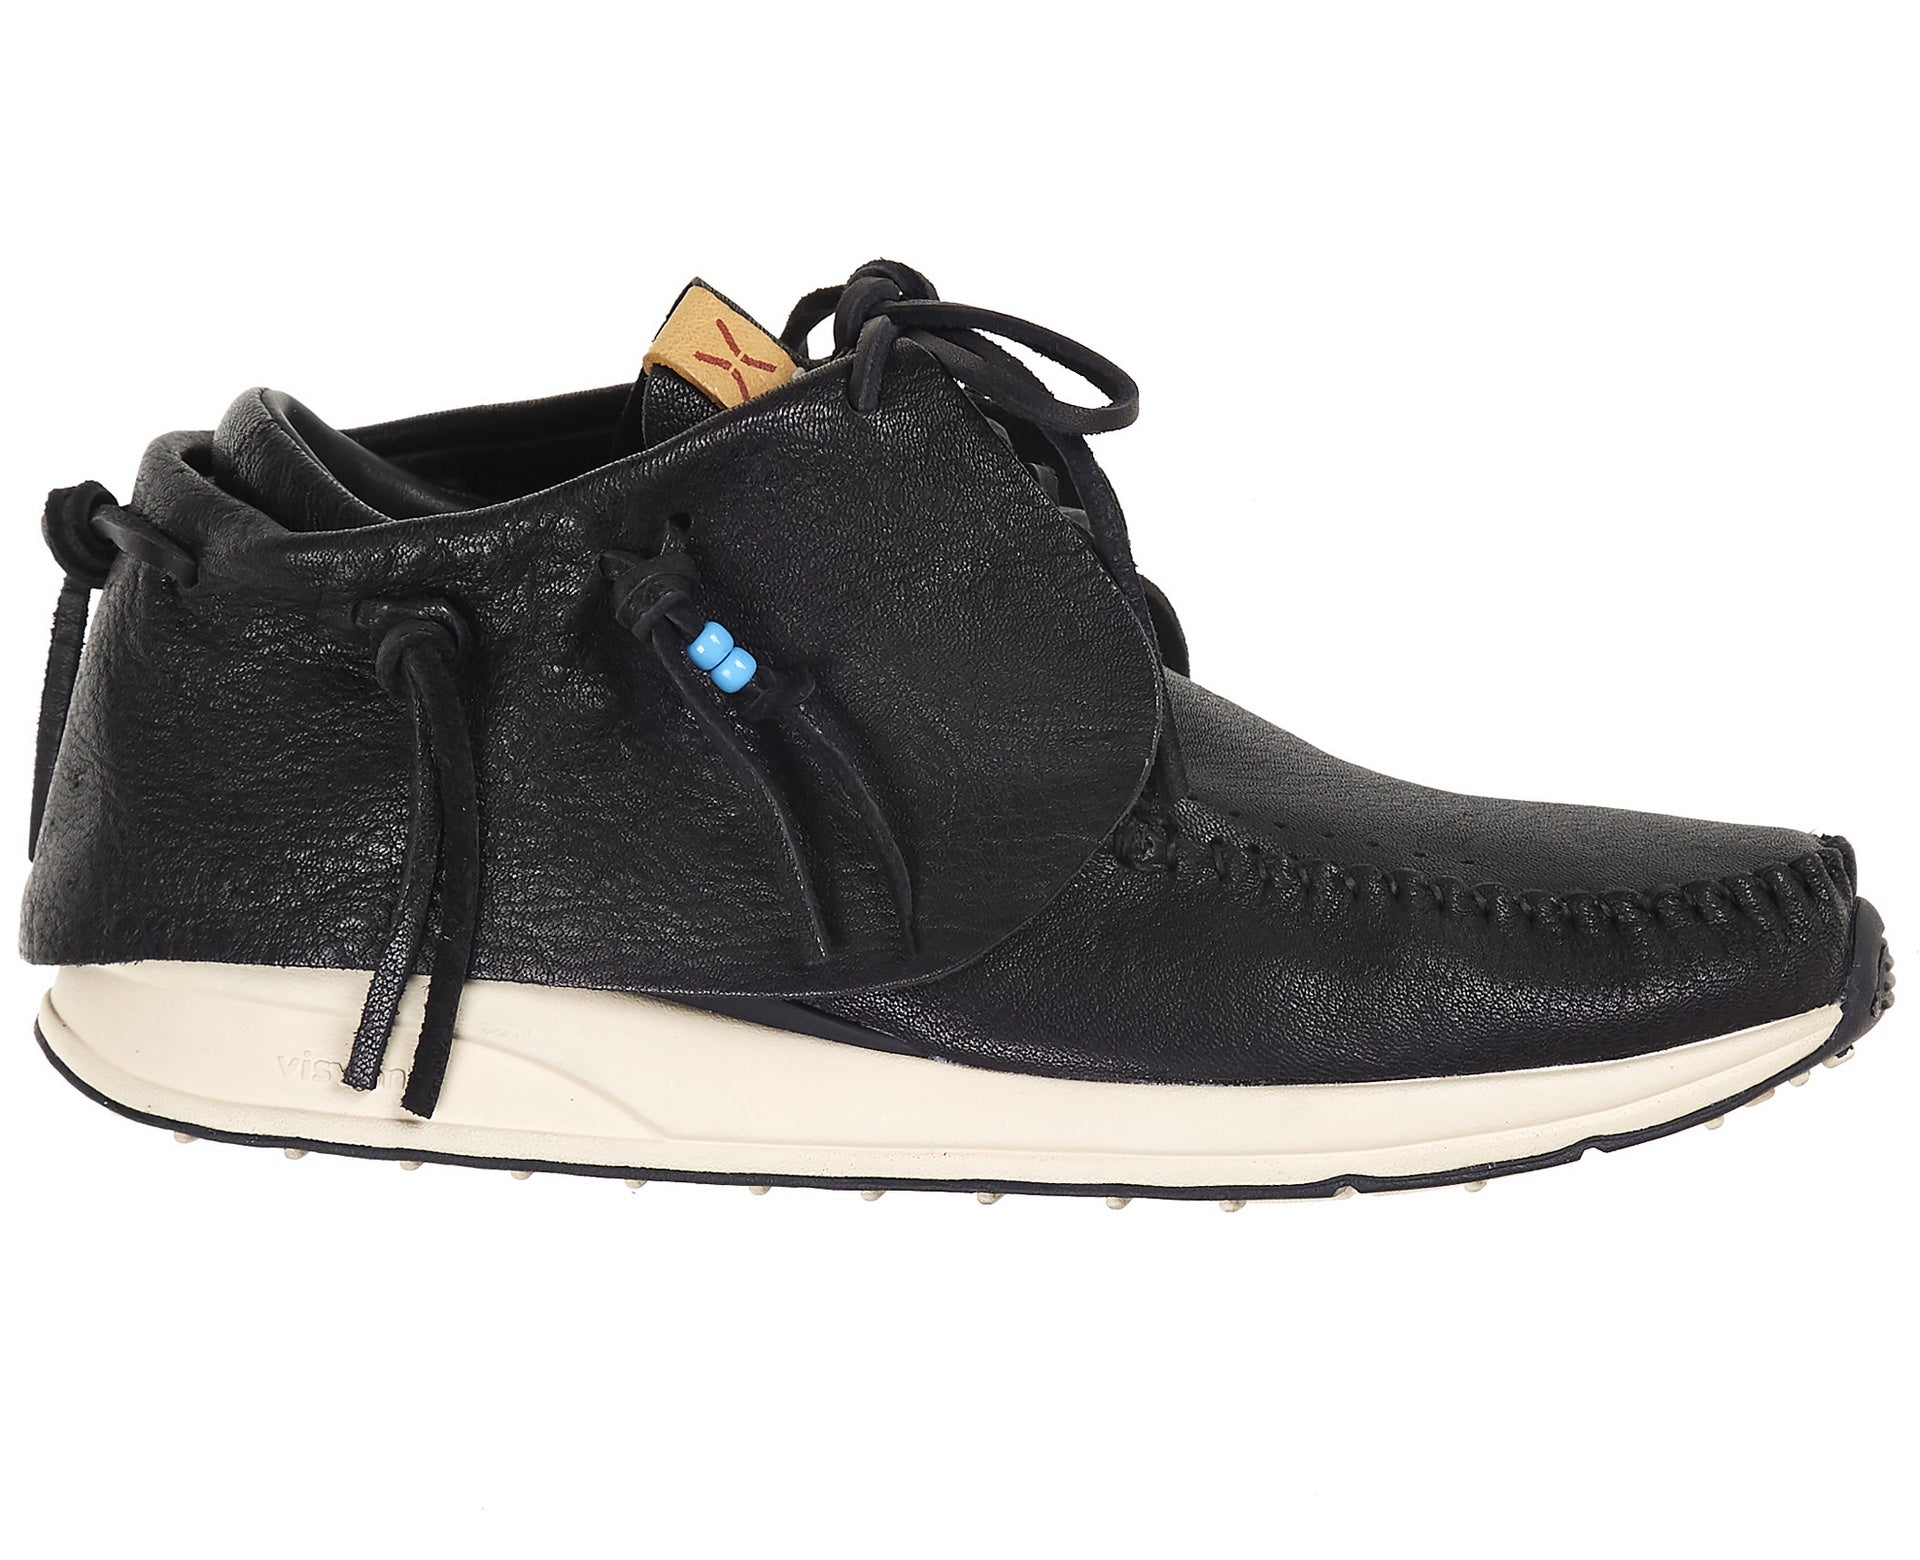 Visvim Men's FBT Red Deer Black